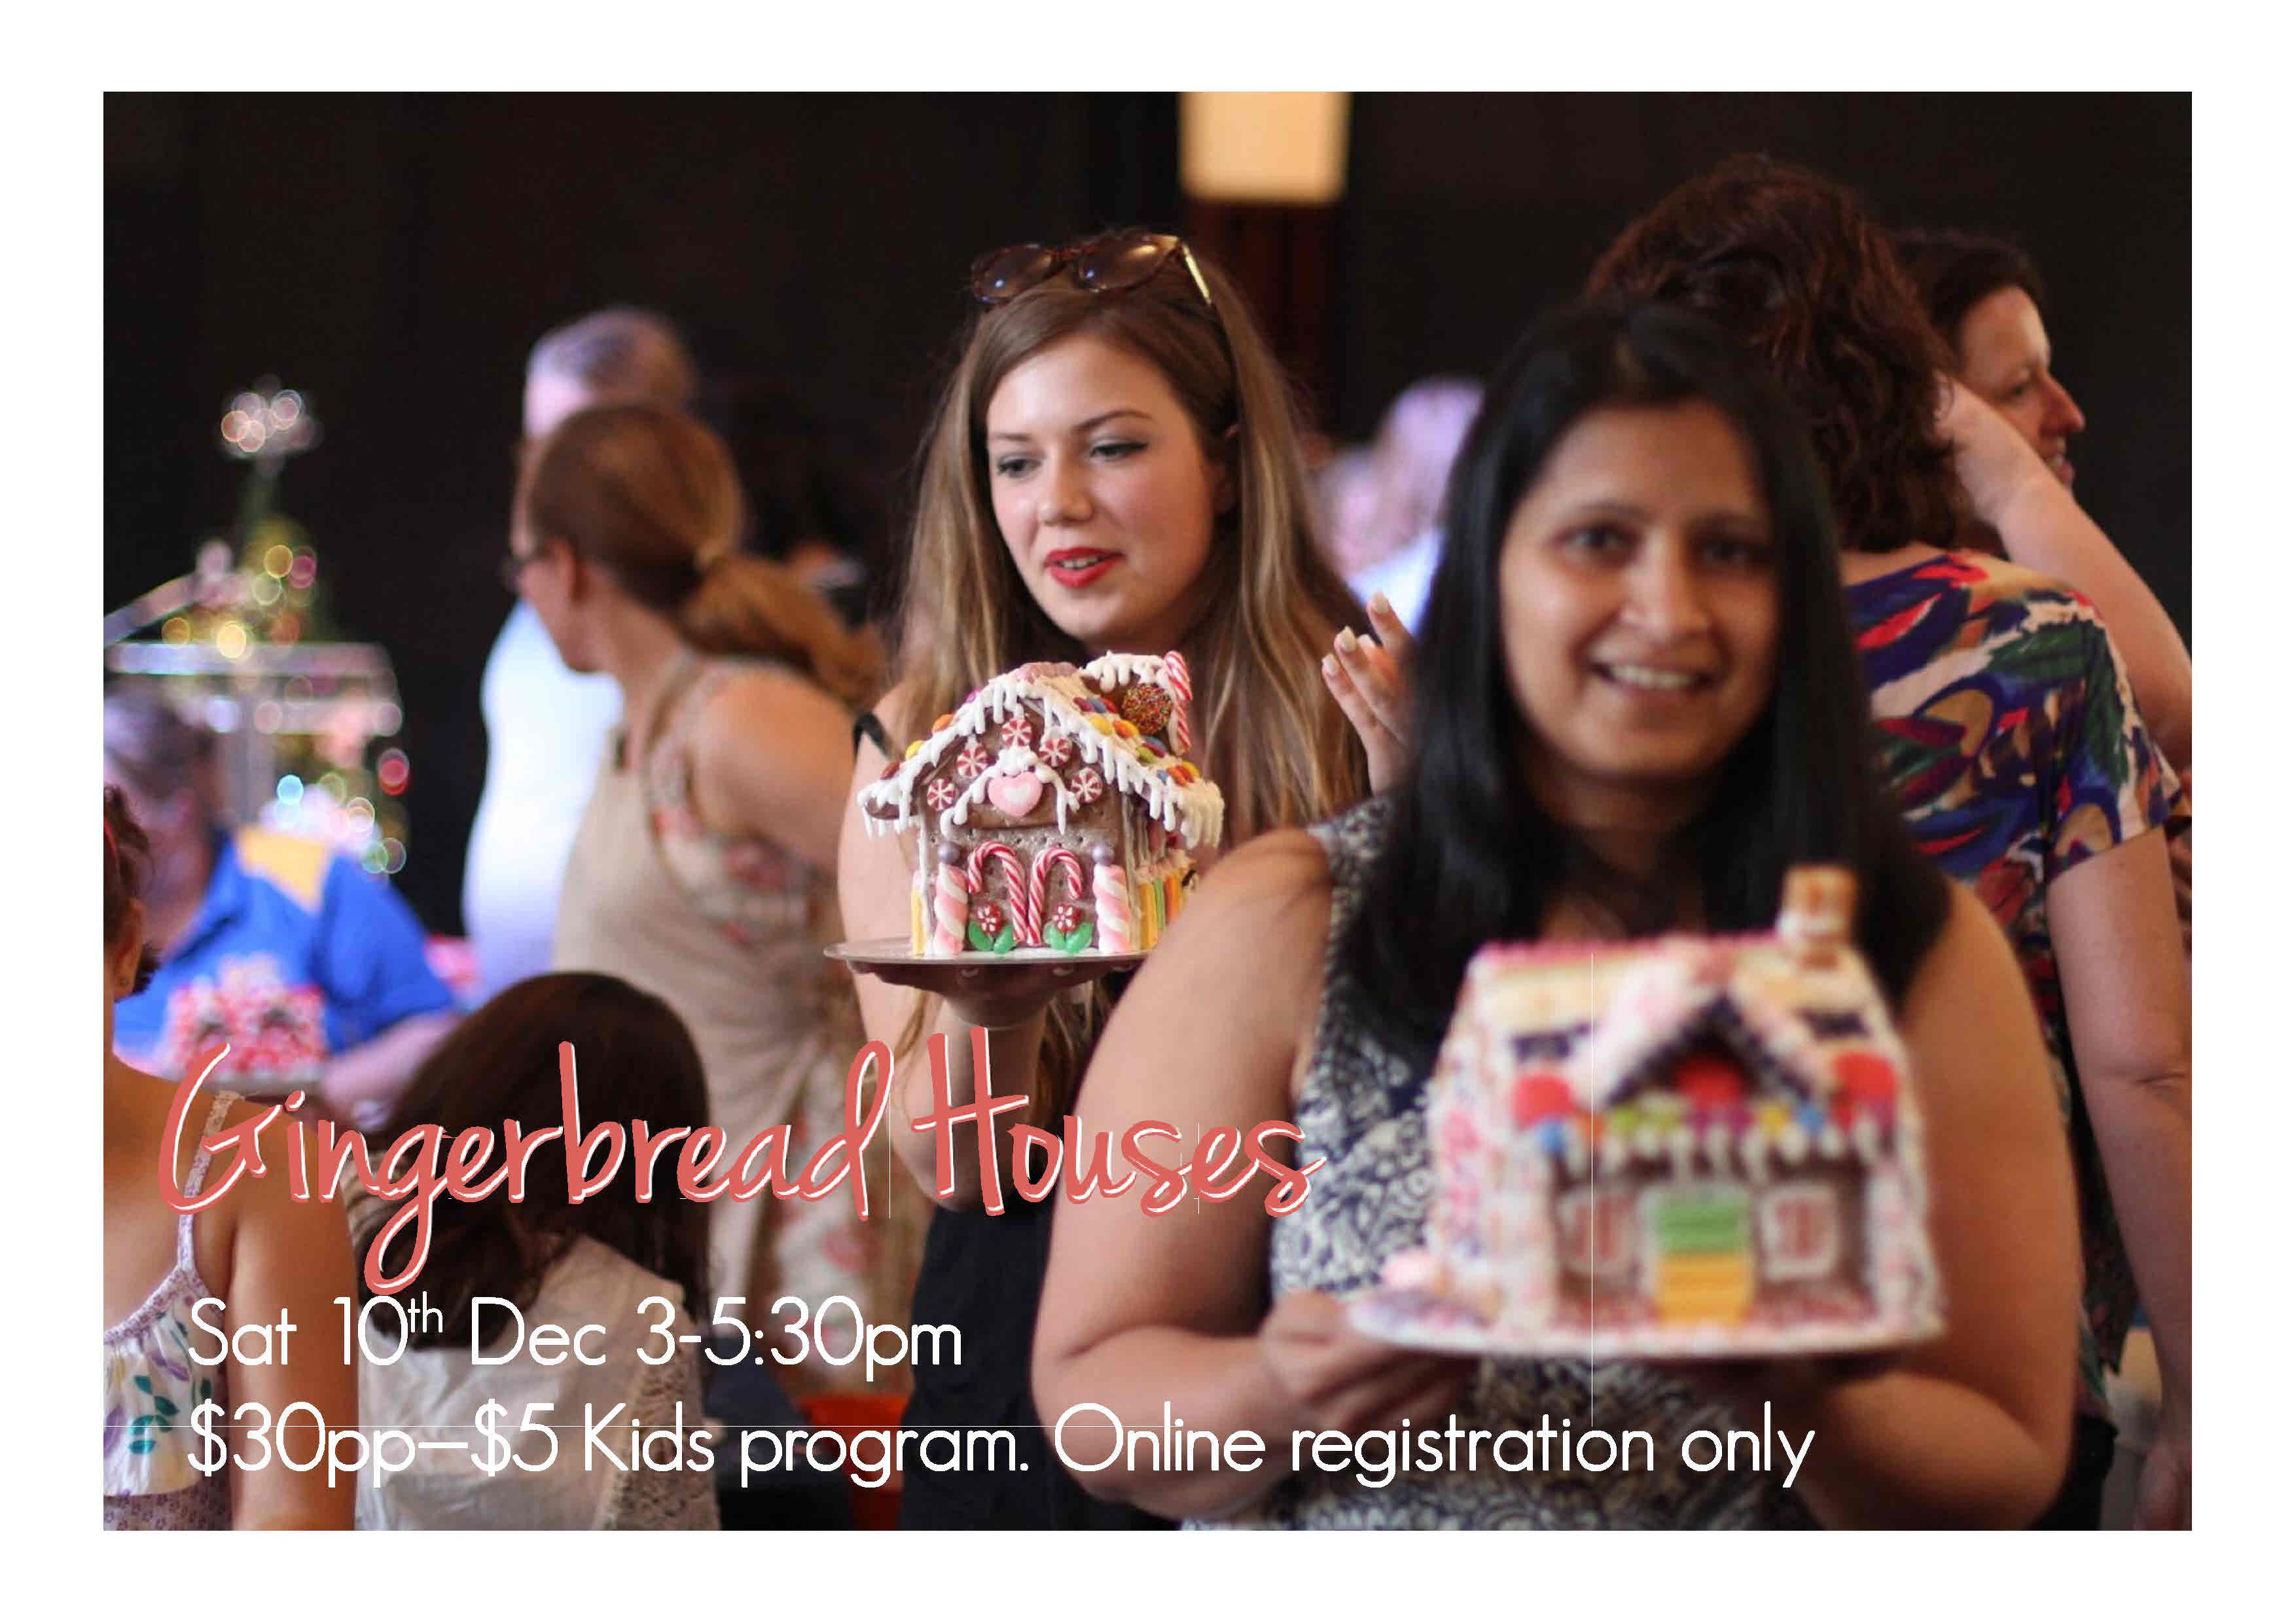 <p>Come along and decorate a traditional Christmas Gingerbread House and find out more about the real meaning of Christmas! When: Saturday 10th Dec, 3 – 5.30pm Where: North Ryde Anglican Church Hall, Cox's Rd. Cost: $30 (includes house kit, lolly decorations, wrapping, afternoon tea) What to bring: Apron Bring along [&hellip;]</p>